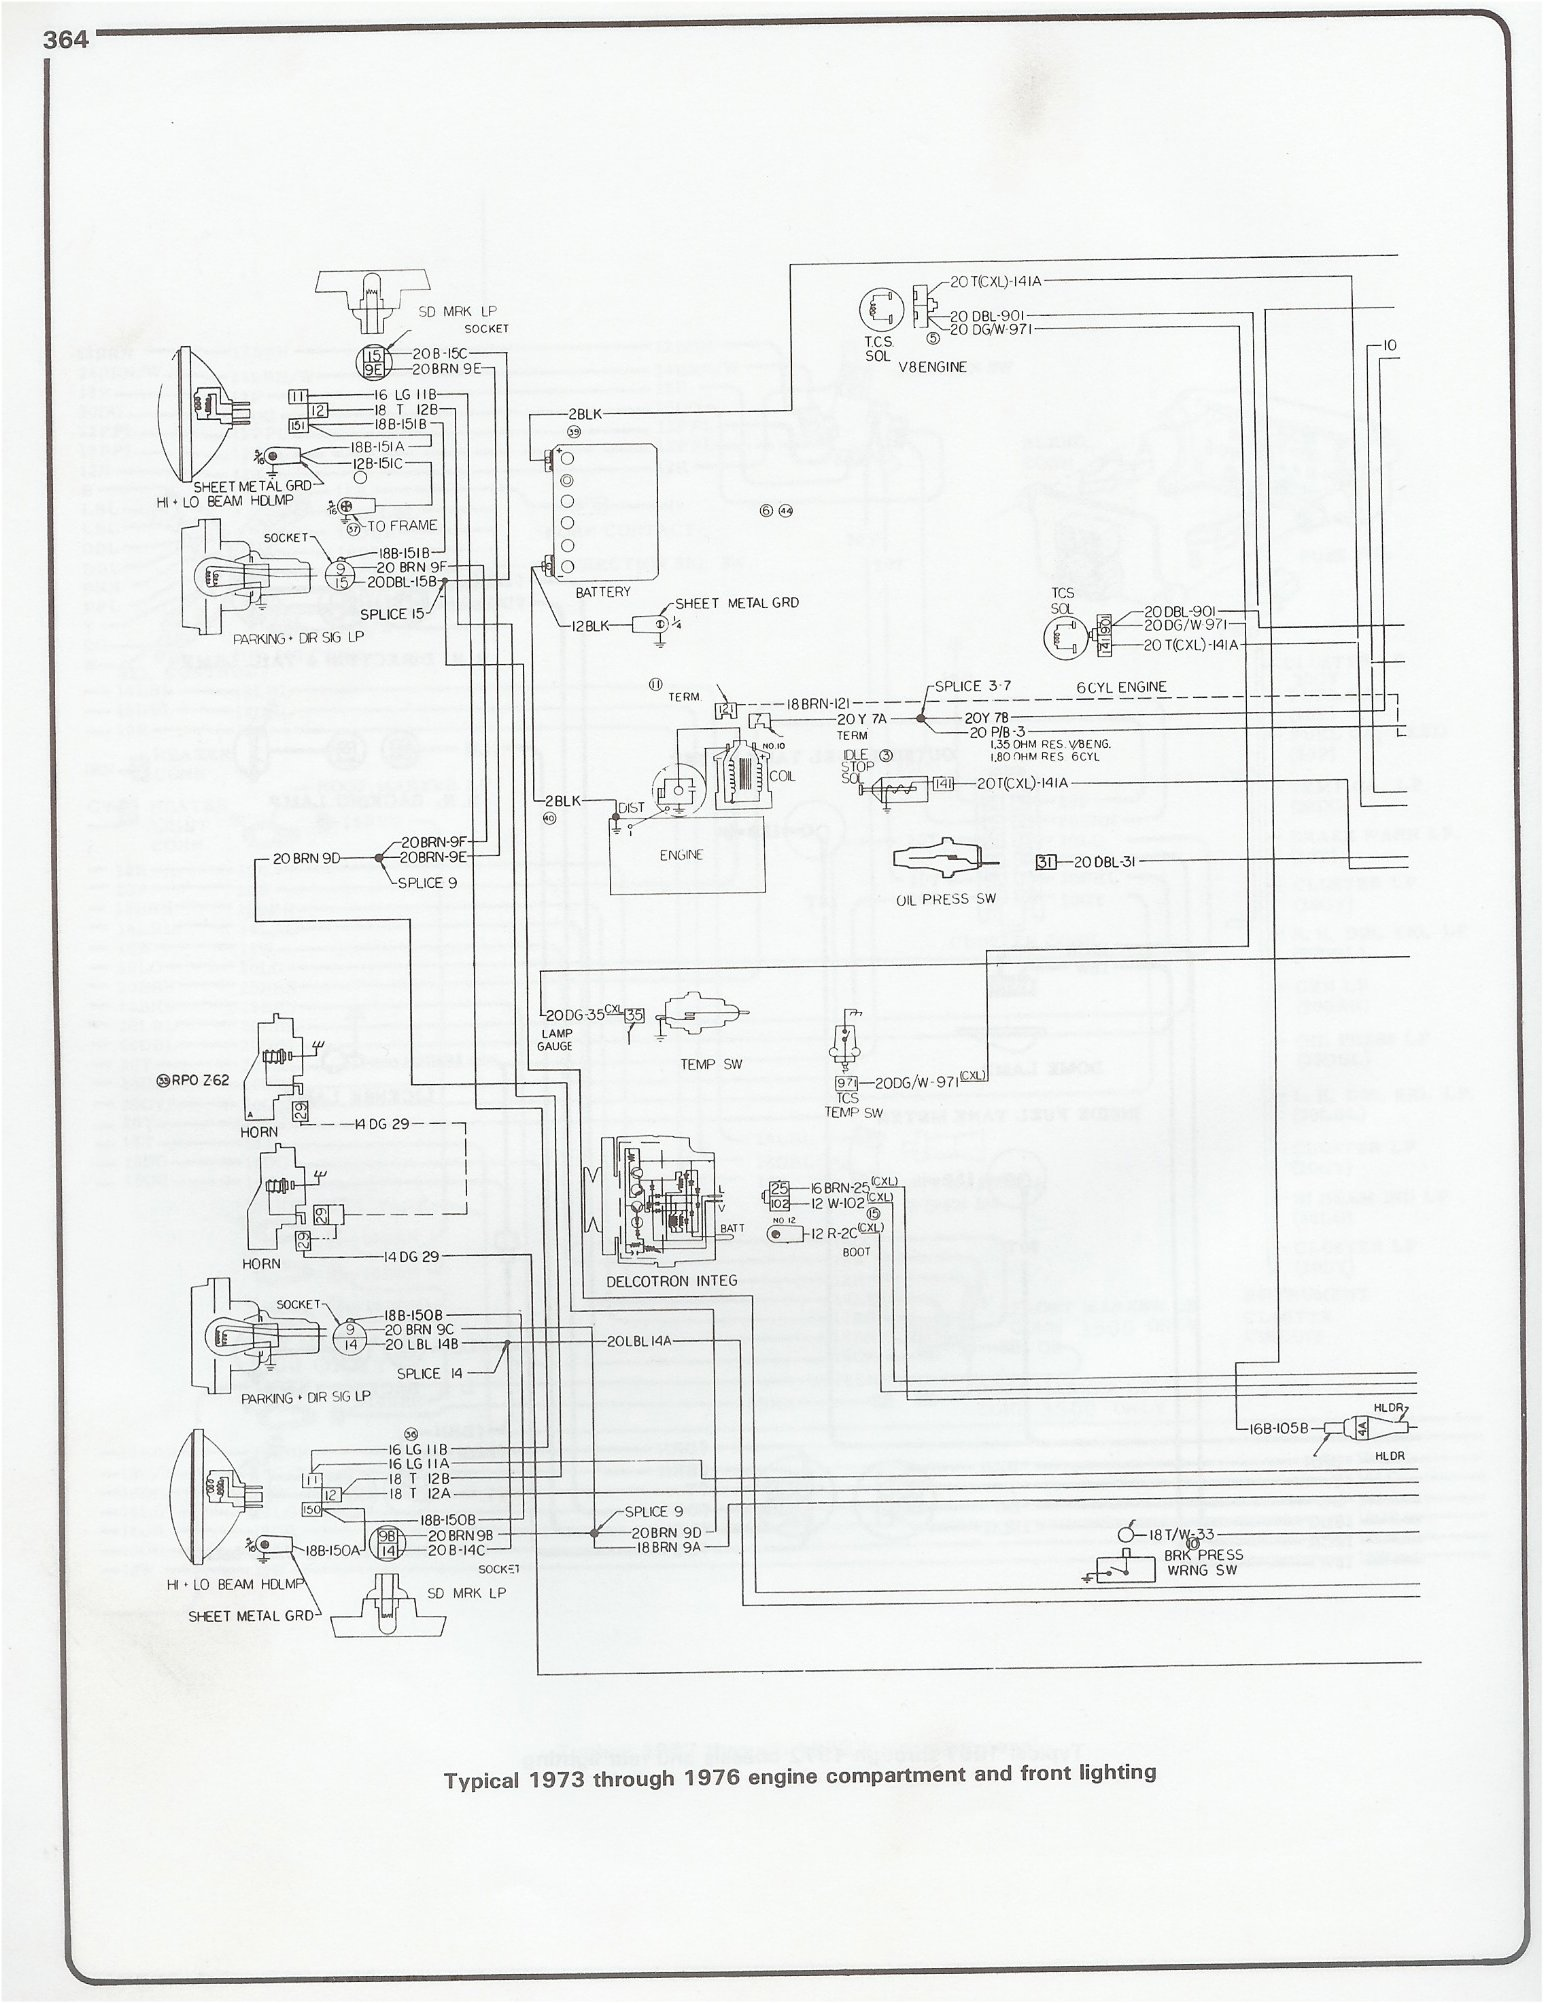 73 76_eng_frt_light complete 73 87 wiring diagrams 1970 Chevy C10 Fuse Box Diagram at gsmx.co